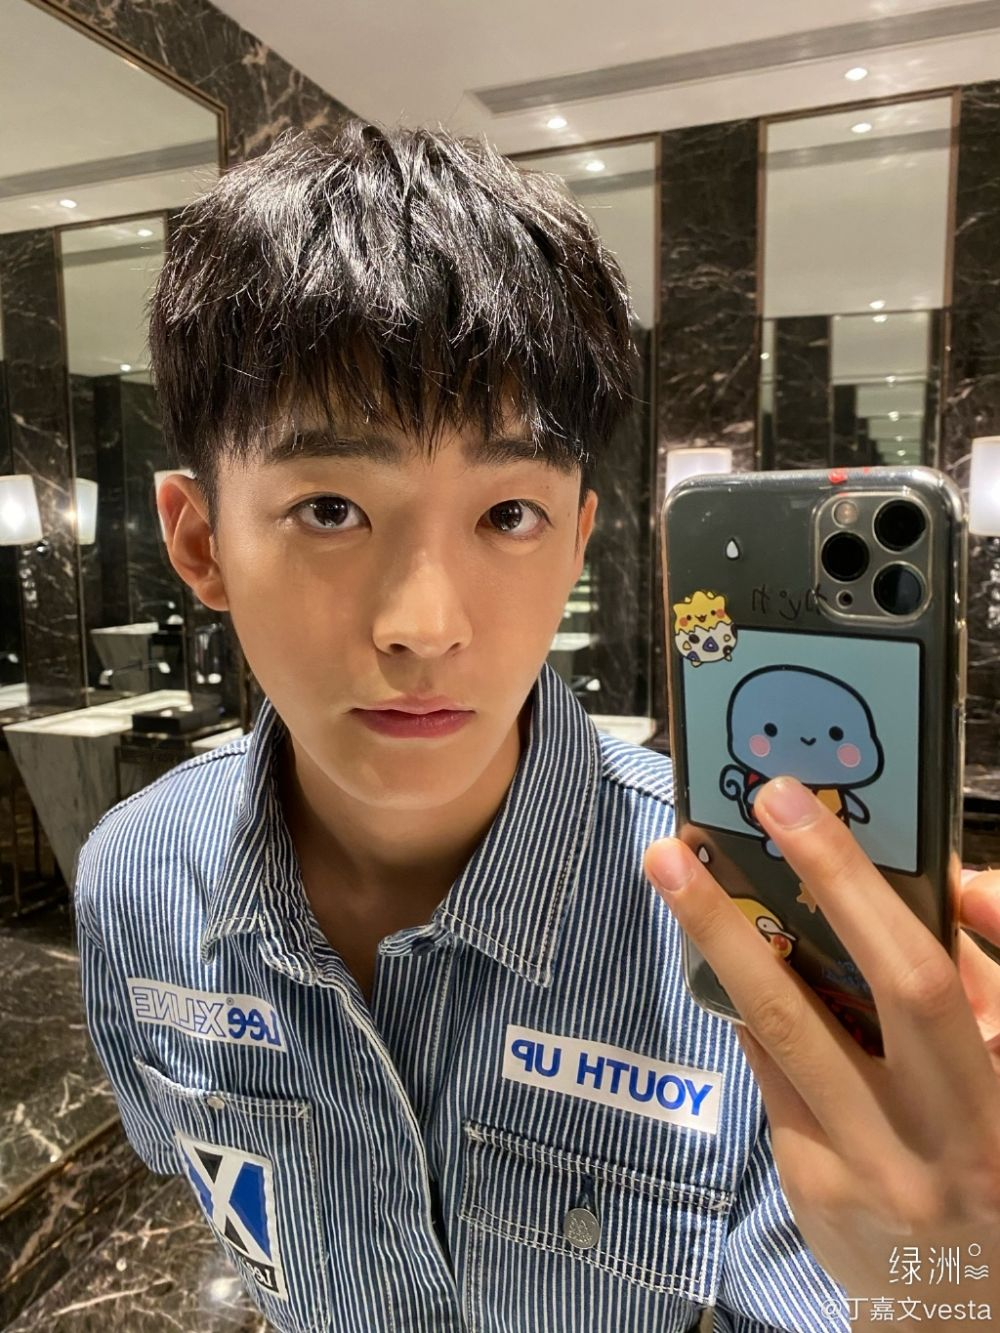 9 Potret Manis Ding Jia Wen, Comeback Lewat Drama China Truth Or Dare